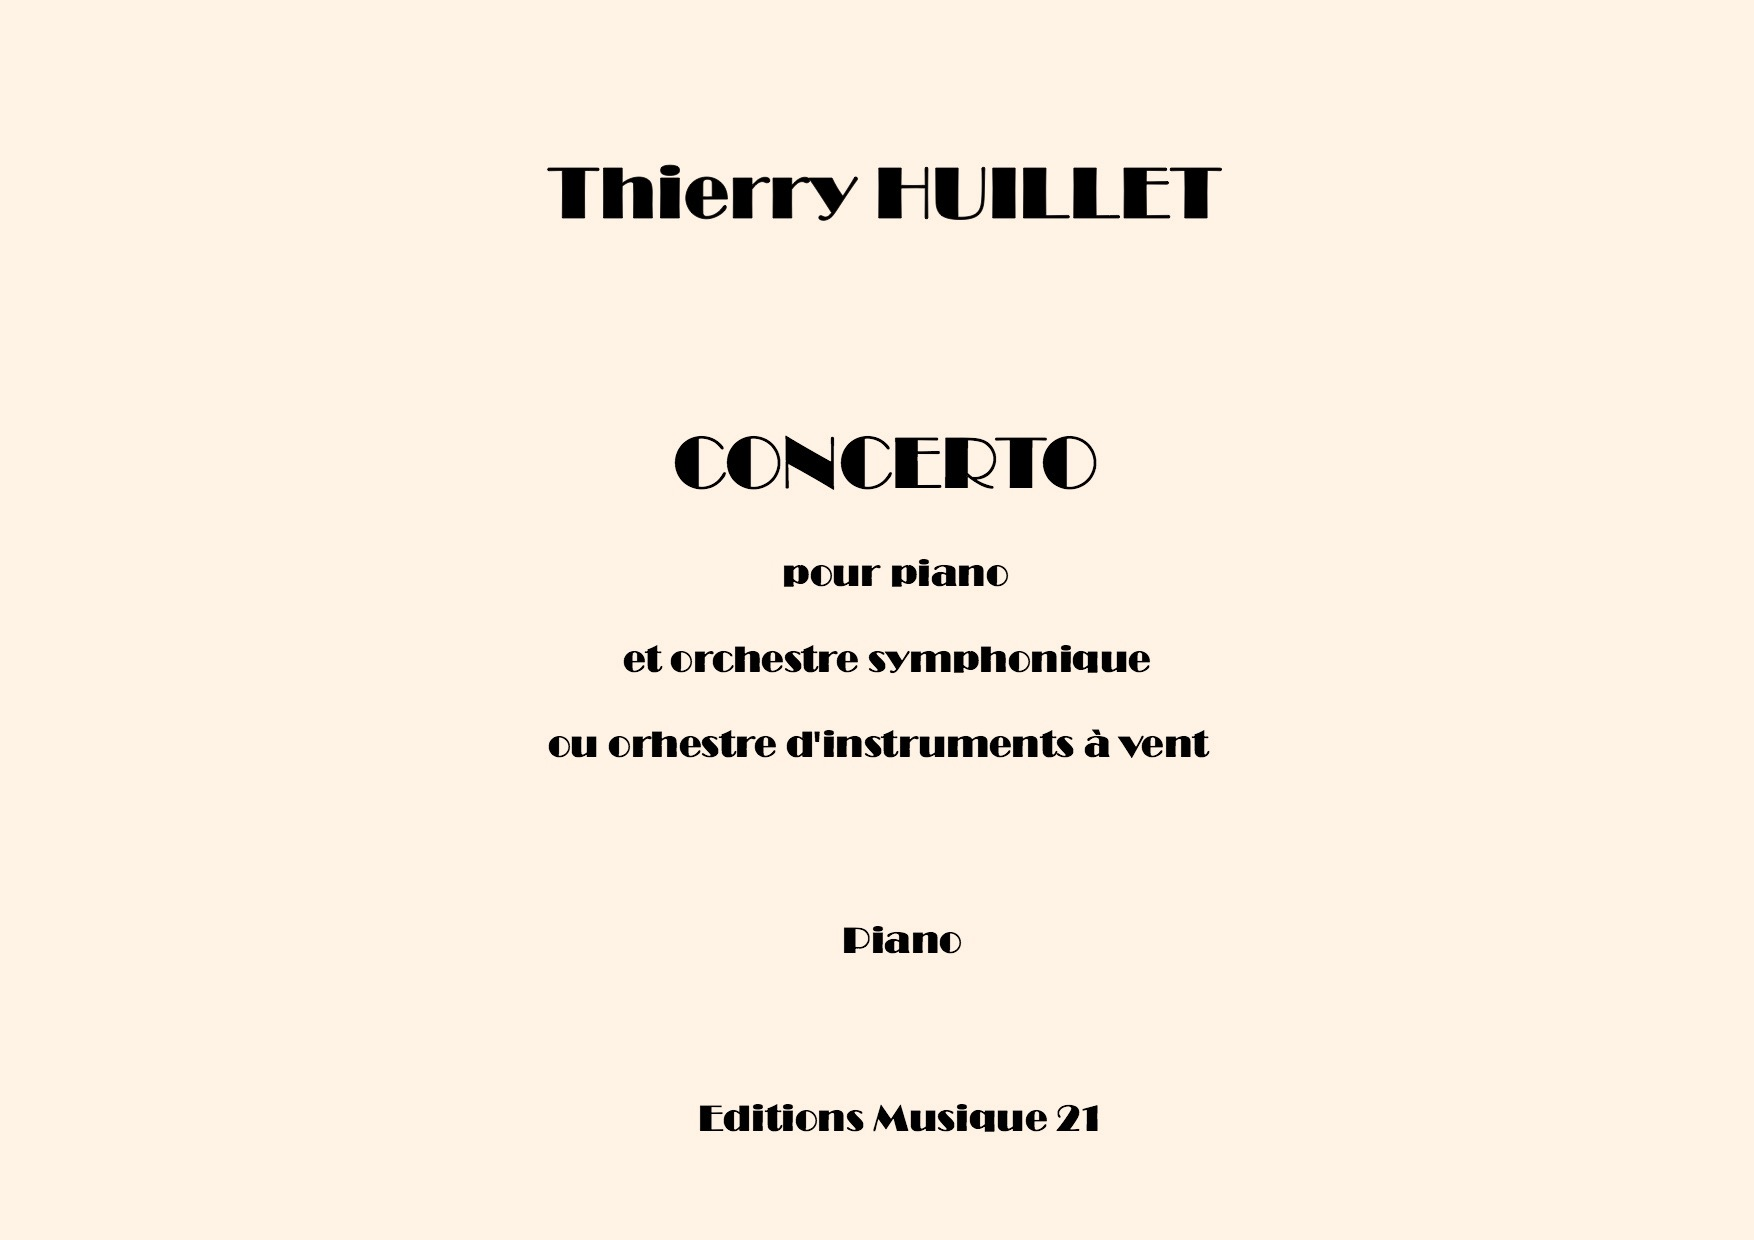 Thierry HUILLET – Concerto For Piano And Symphonic Orchestra Or Wind Orchestra (piano Score + Piano Score With Reduction Of The Orchestra For 2nd Piano)